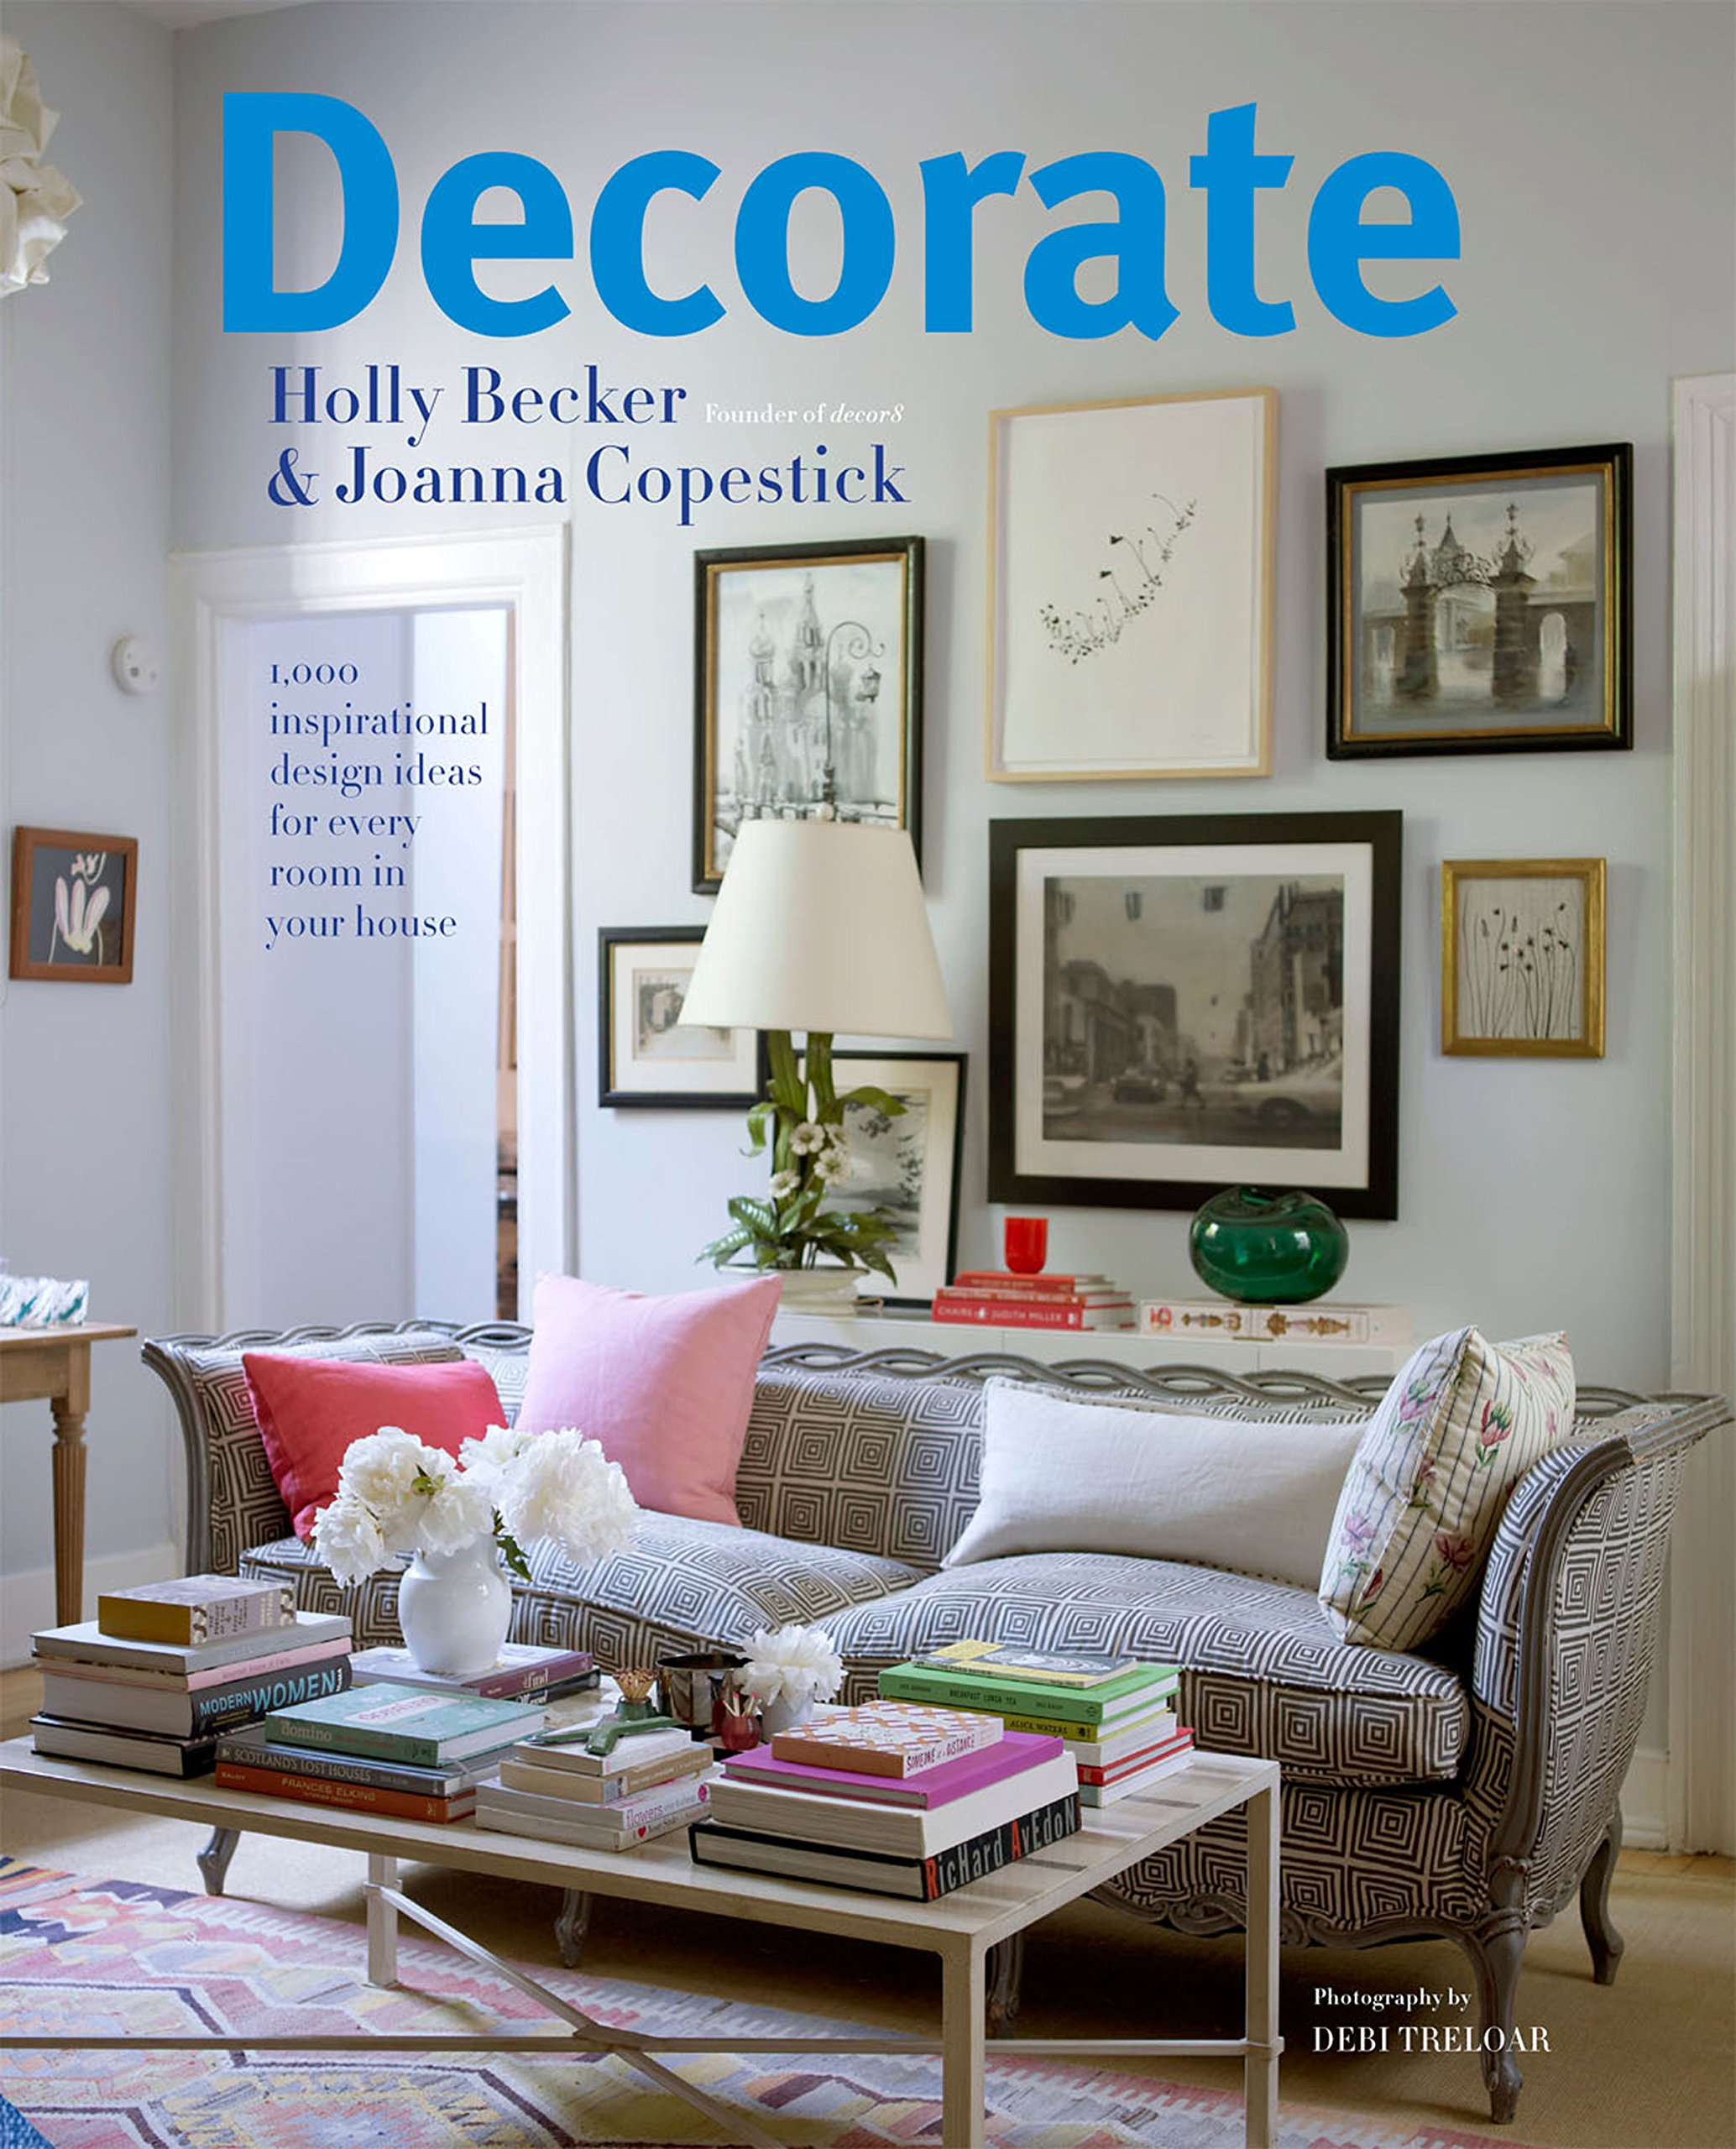 Decorate: 1000 Professional Design Ideas for Every Room in the House: Amazon.es: Holly Becker, Joanna Copestick: Libros en idiomas extranjeros